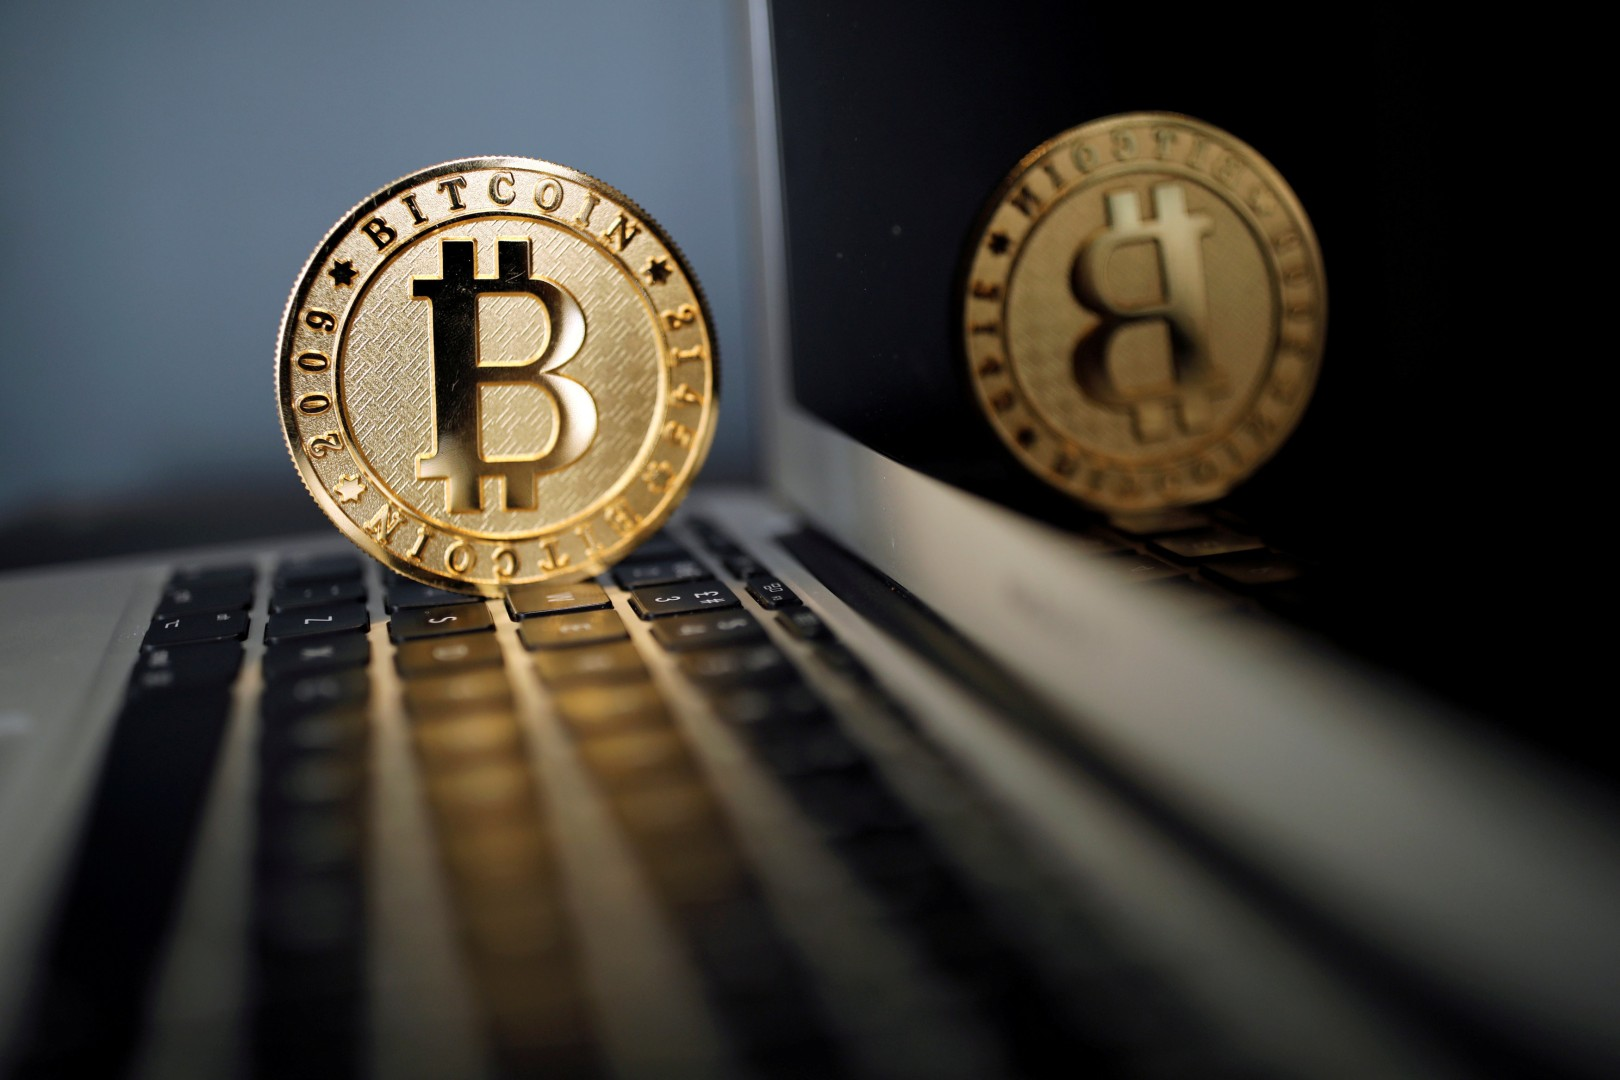 Do you have a computer and broadband? Rent it out to churn bitcoin